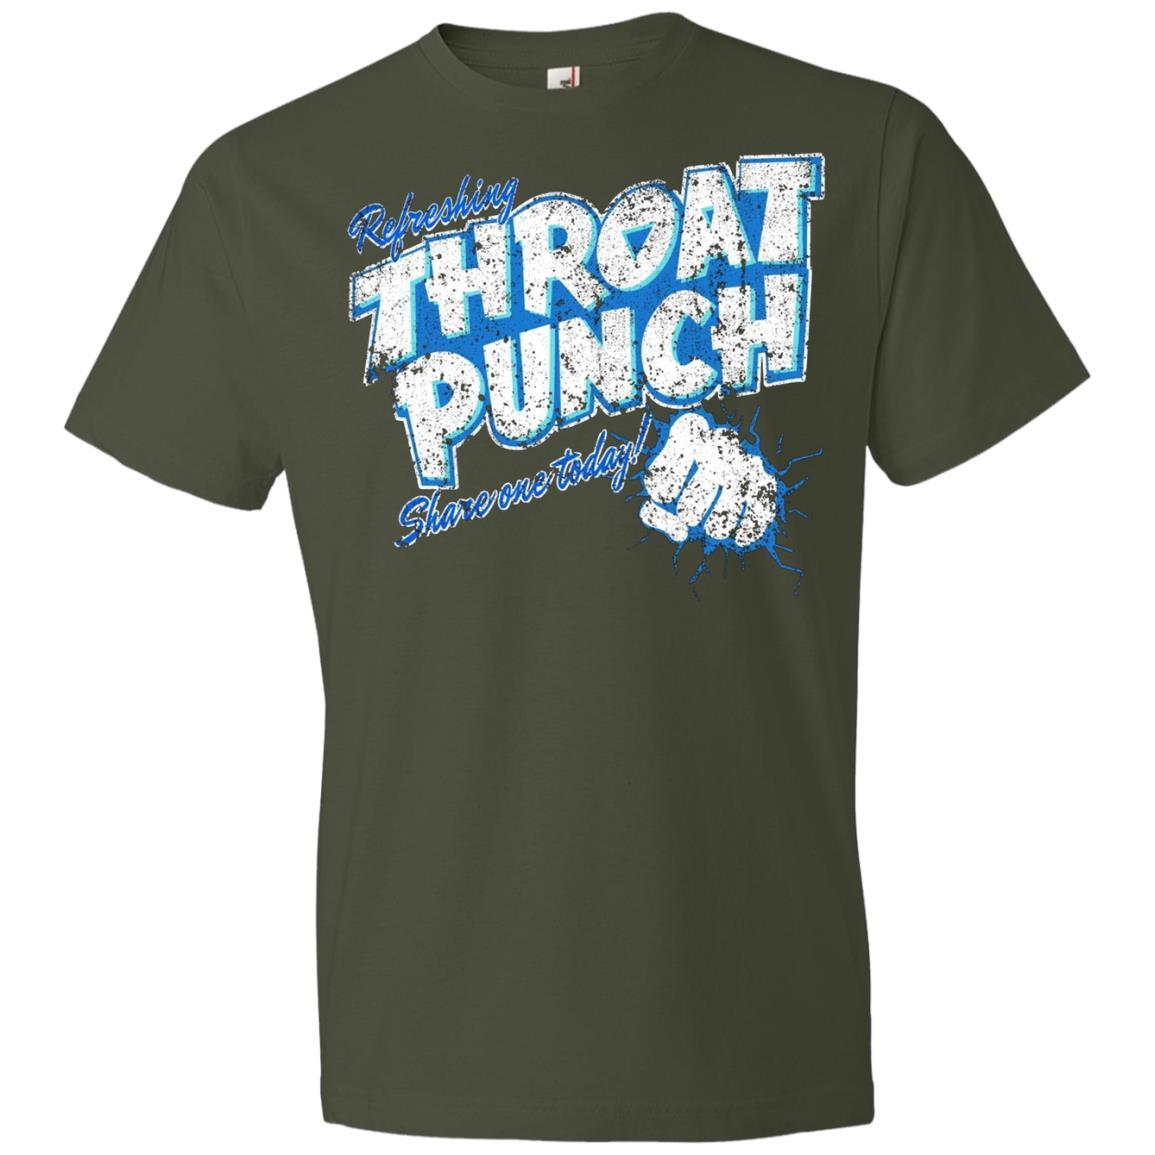 Refreshing Throat Punch Grunge - Anvil Lightweight T-Shirt Style / Color / Size